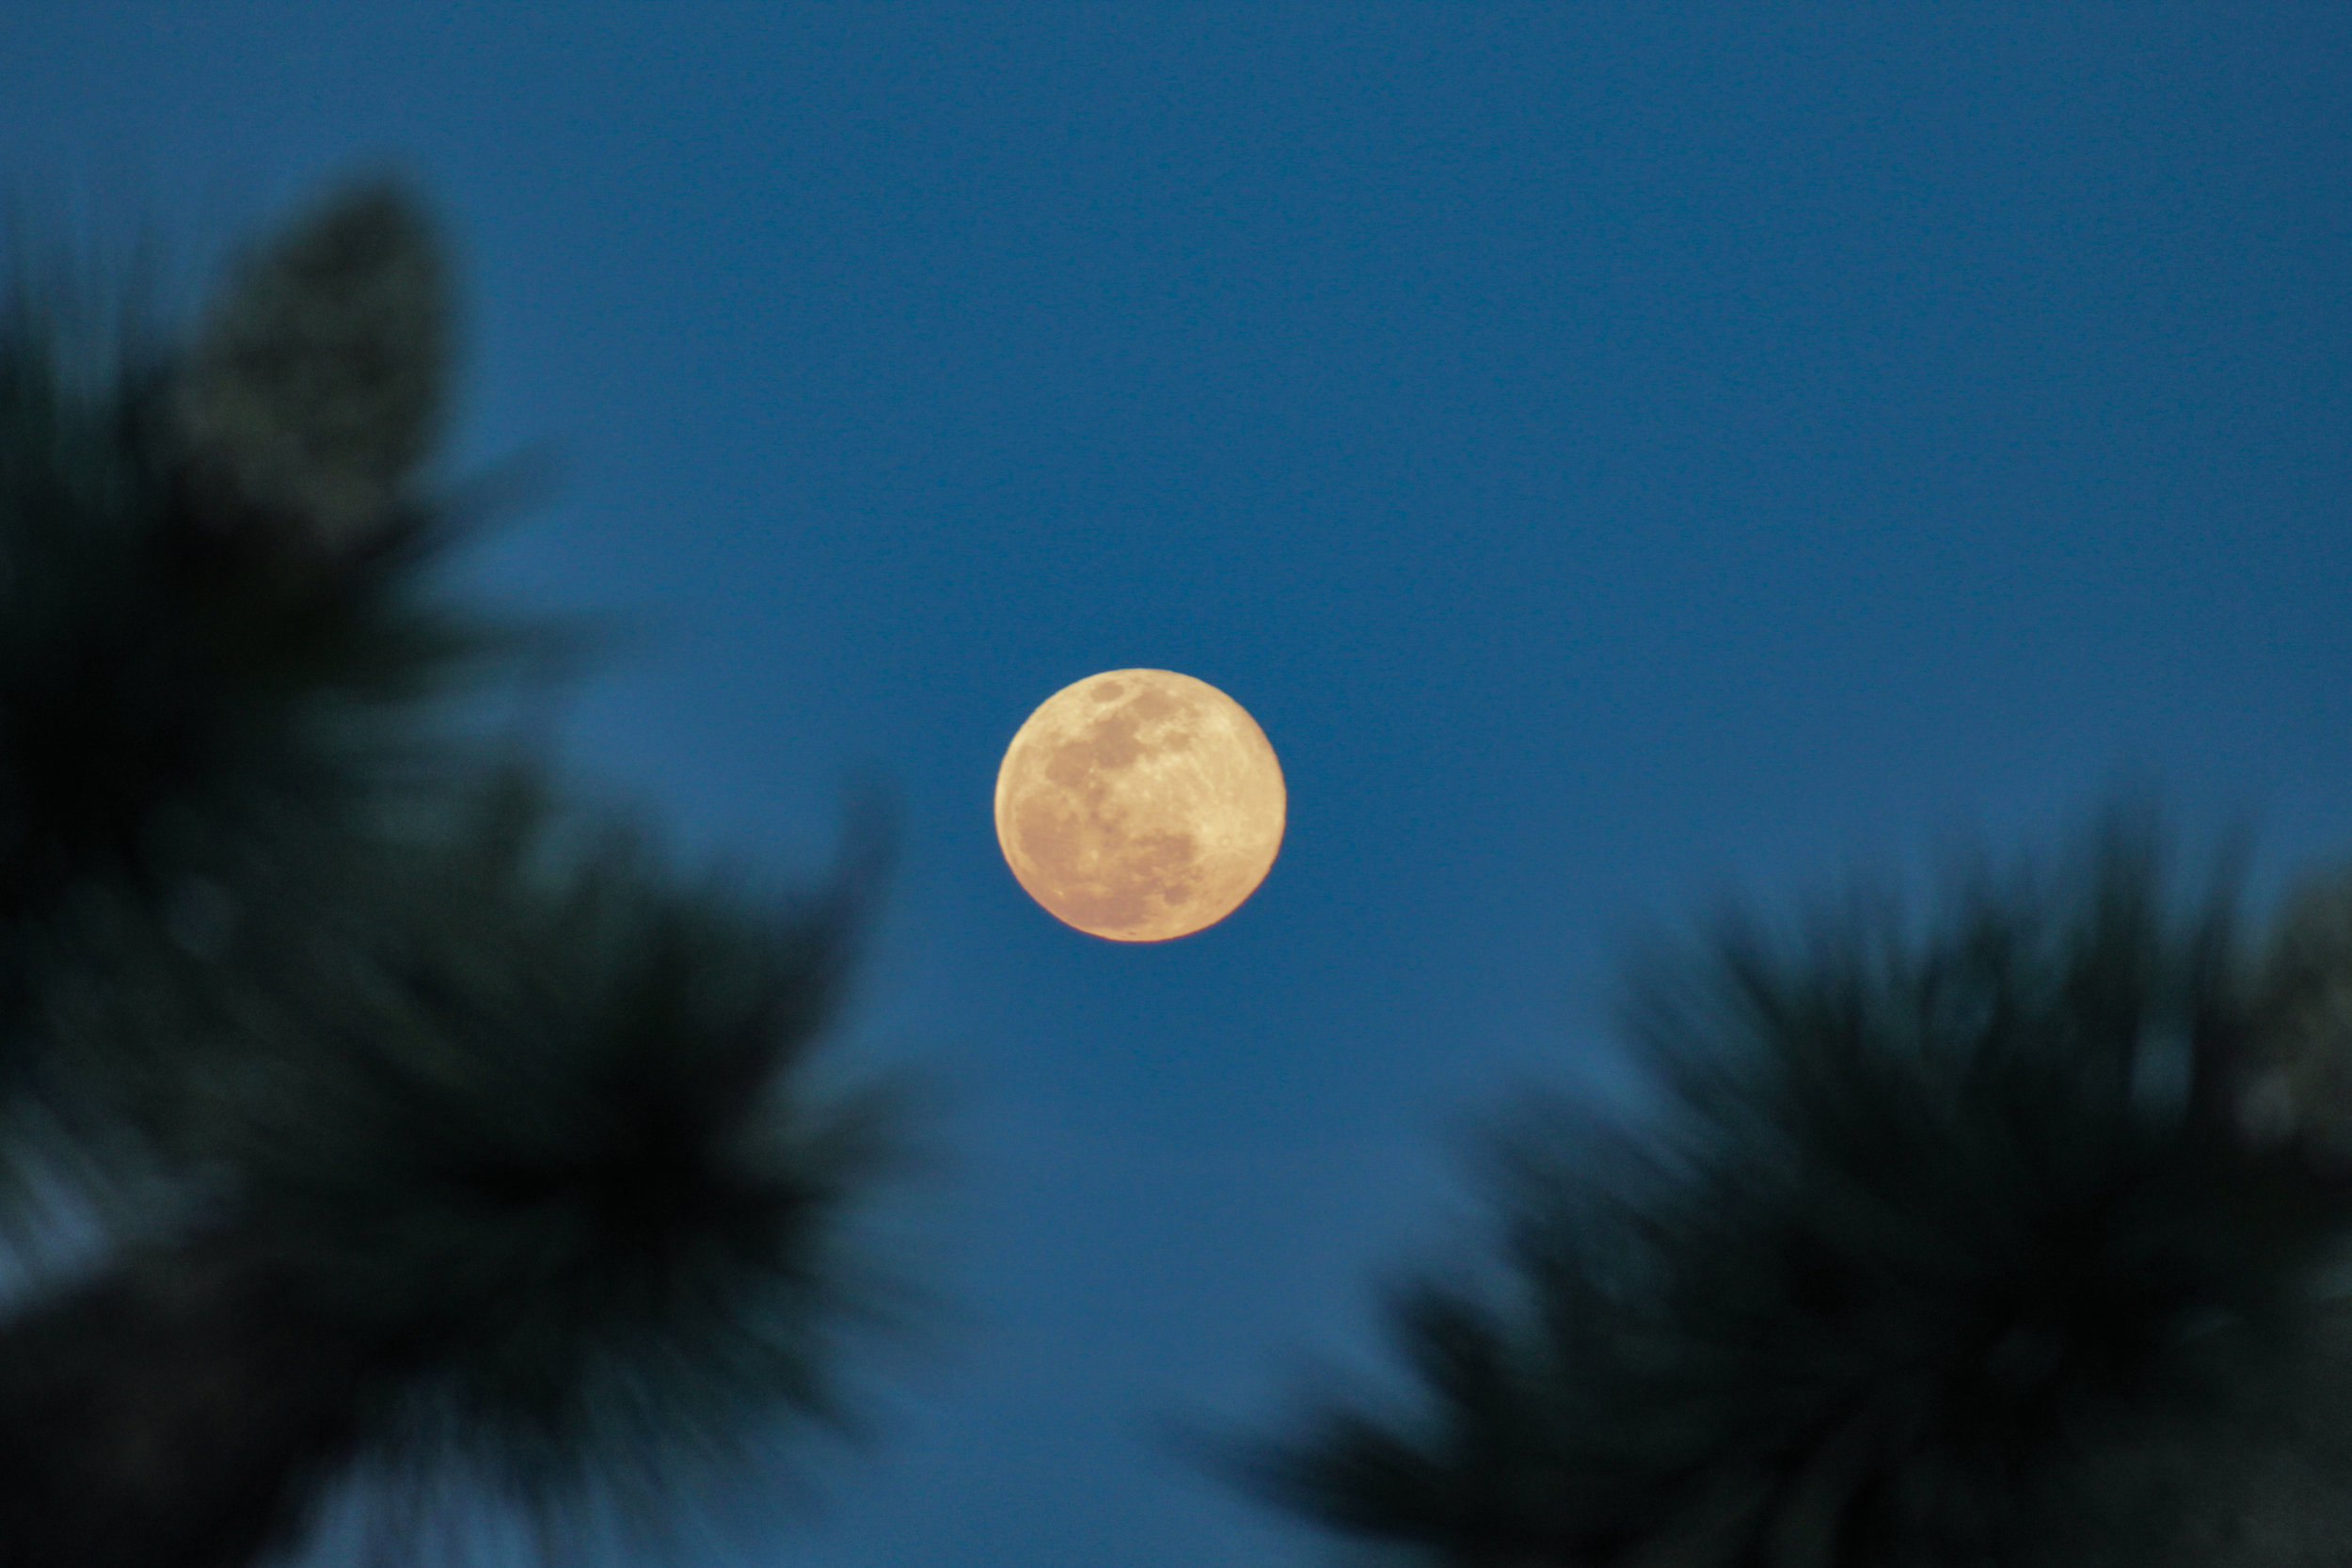 Spring Equinox Full Moon, Joshua Tree National Park, Ca; photo by Chad Woodward, March 2019.